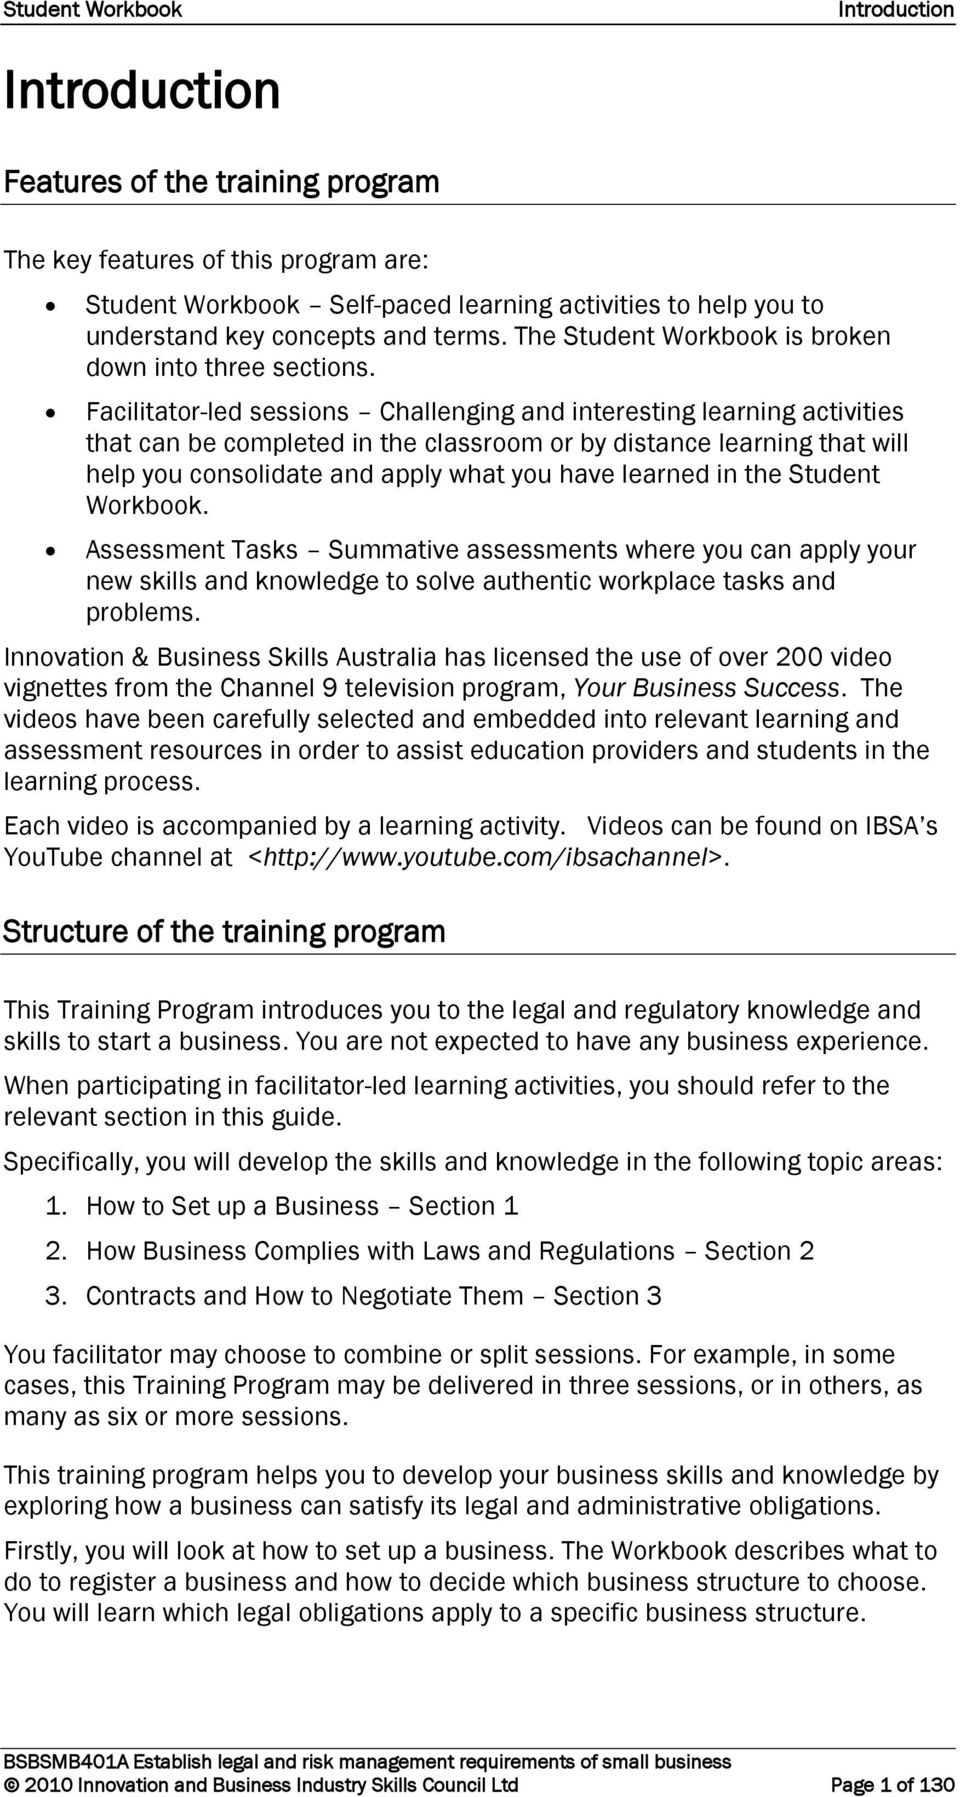 Facilitator-led sessions Challenging and interesting learning activities that can be completed in the classroom or by distance learning that will help you consolidate and apply what you have learned